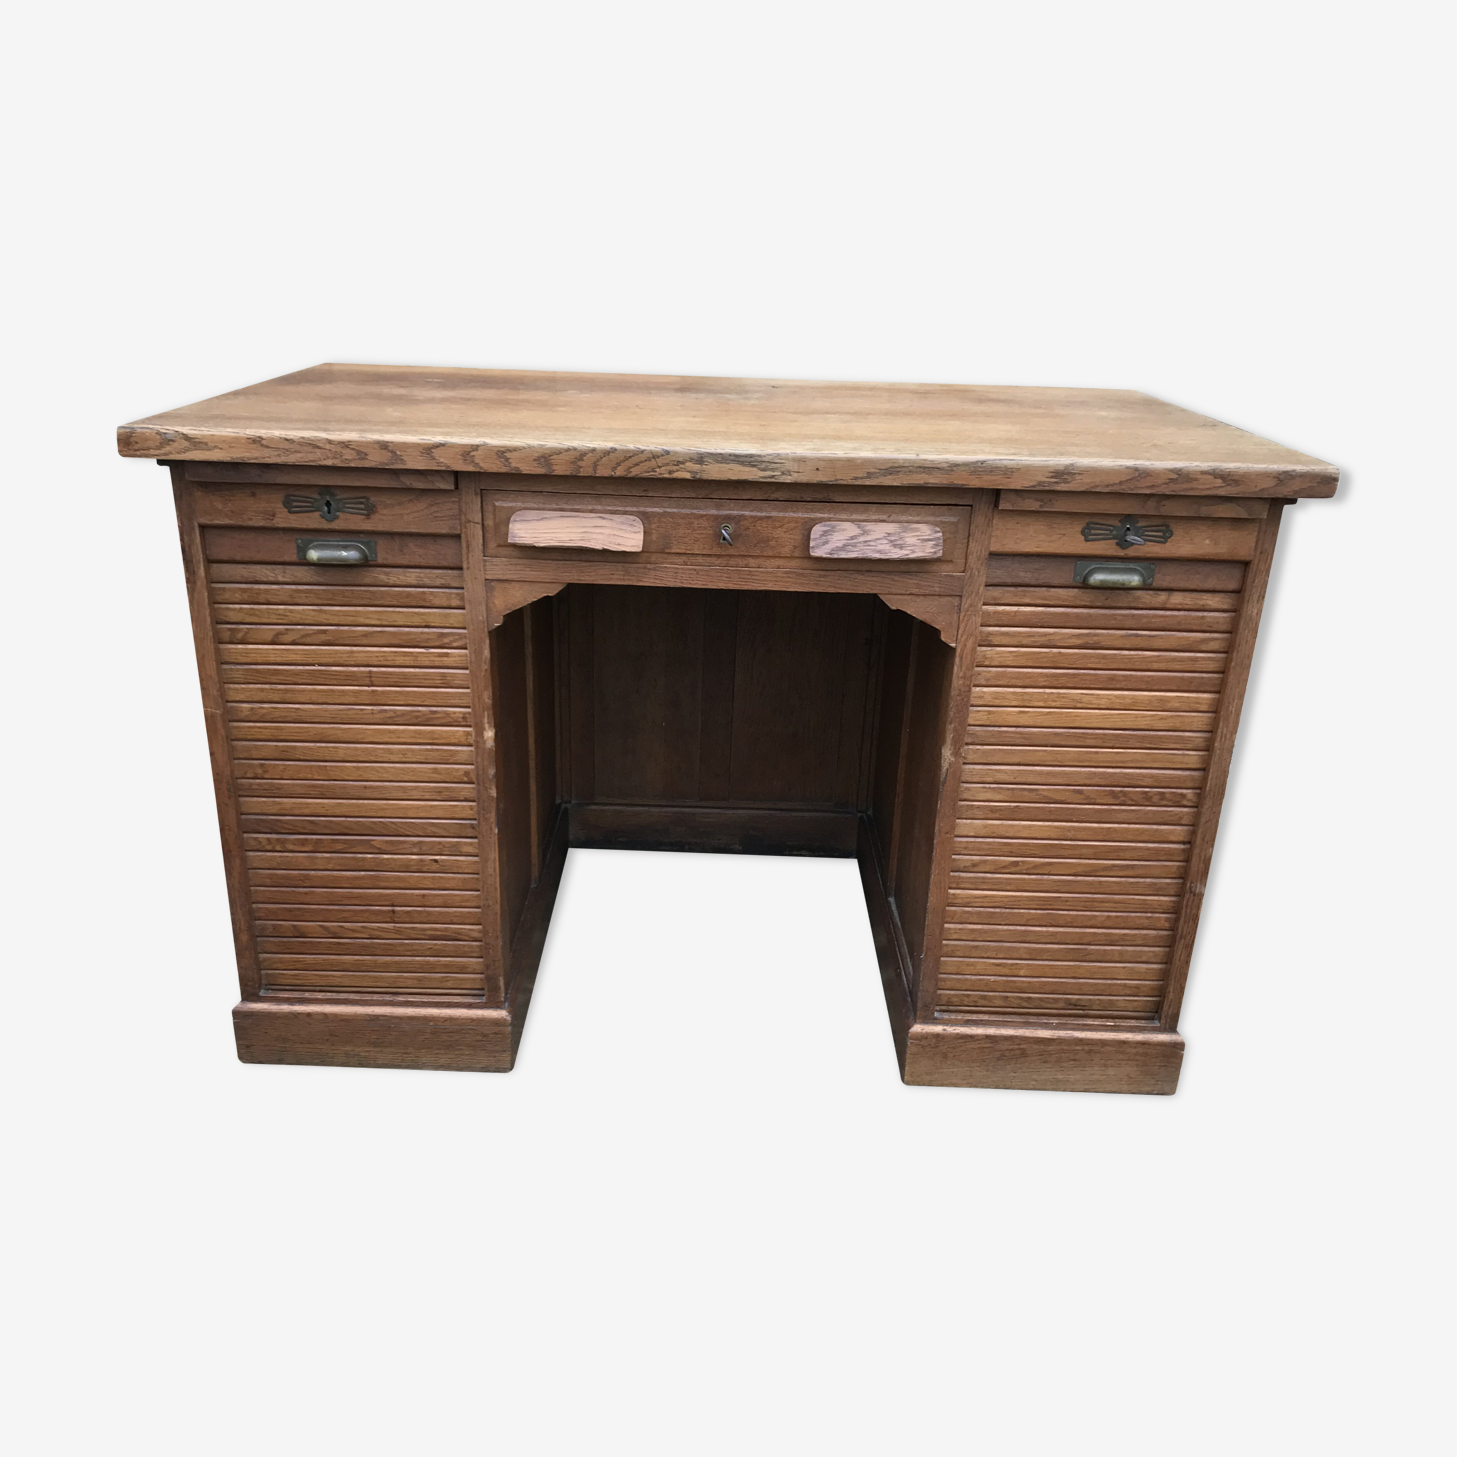 Desk administrative old oak to curtains